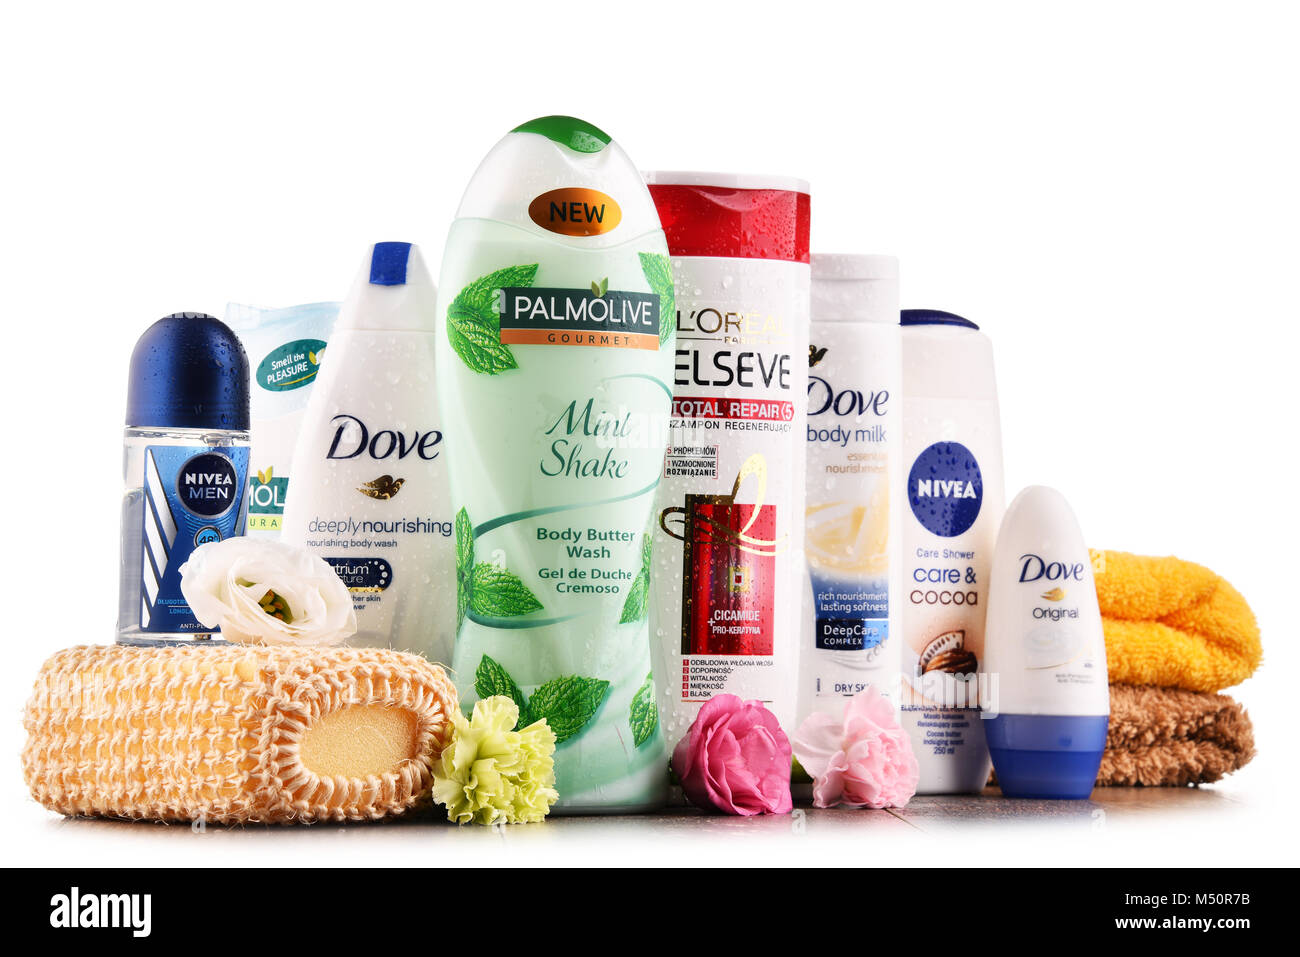 Composition with assorted global body care and beauty brands - Stock Image